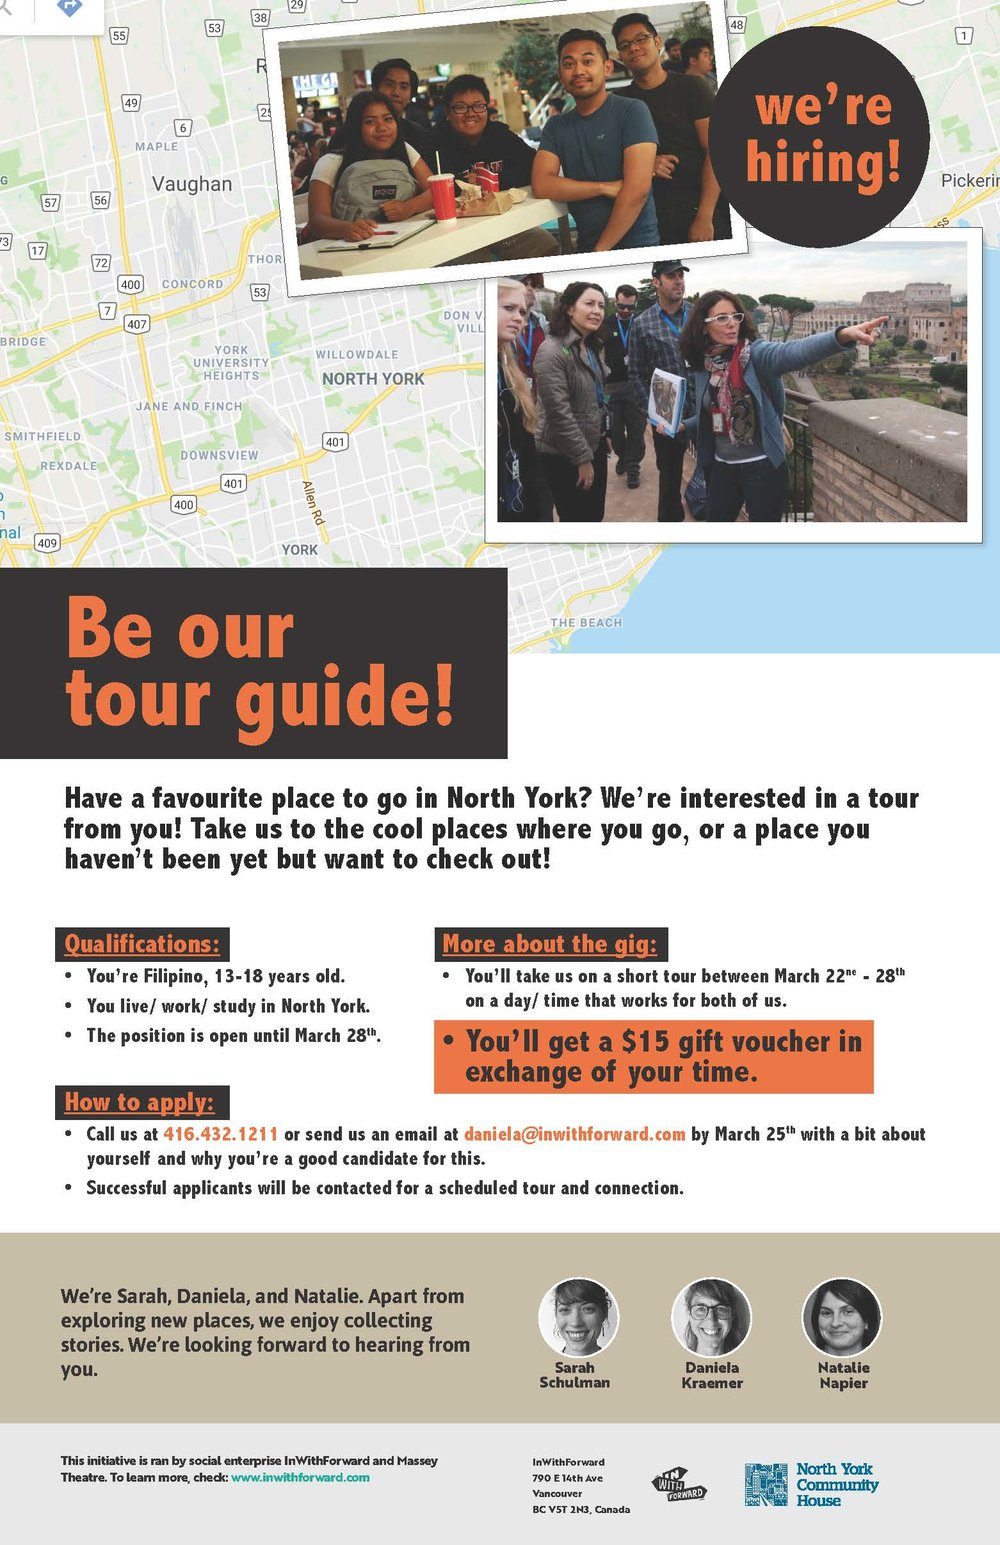 2018_03_09 posters North York recruitment (2)_Page_09.jpg